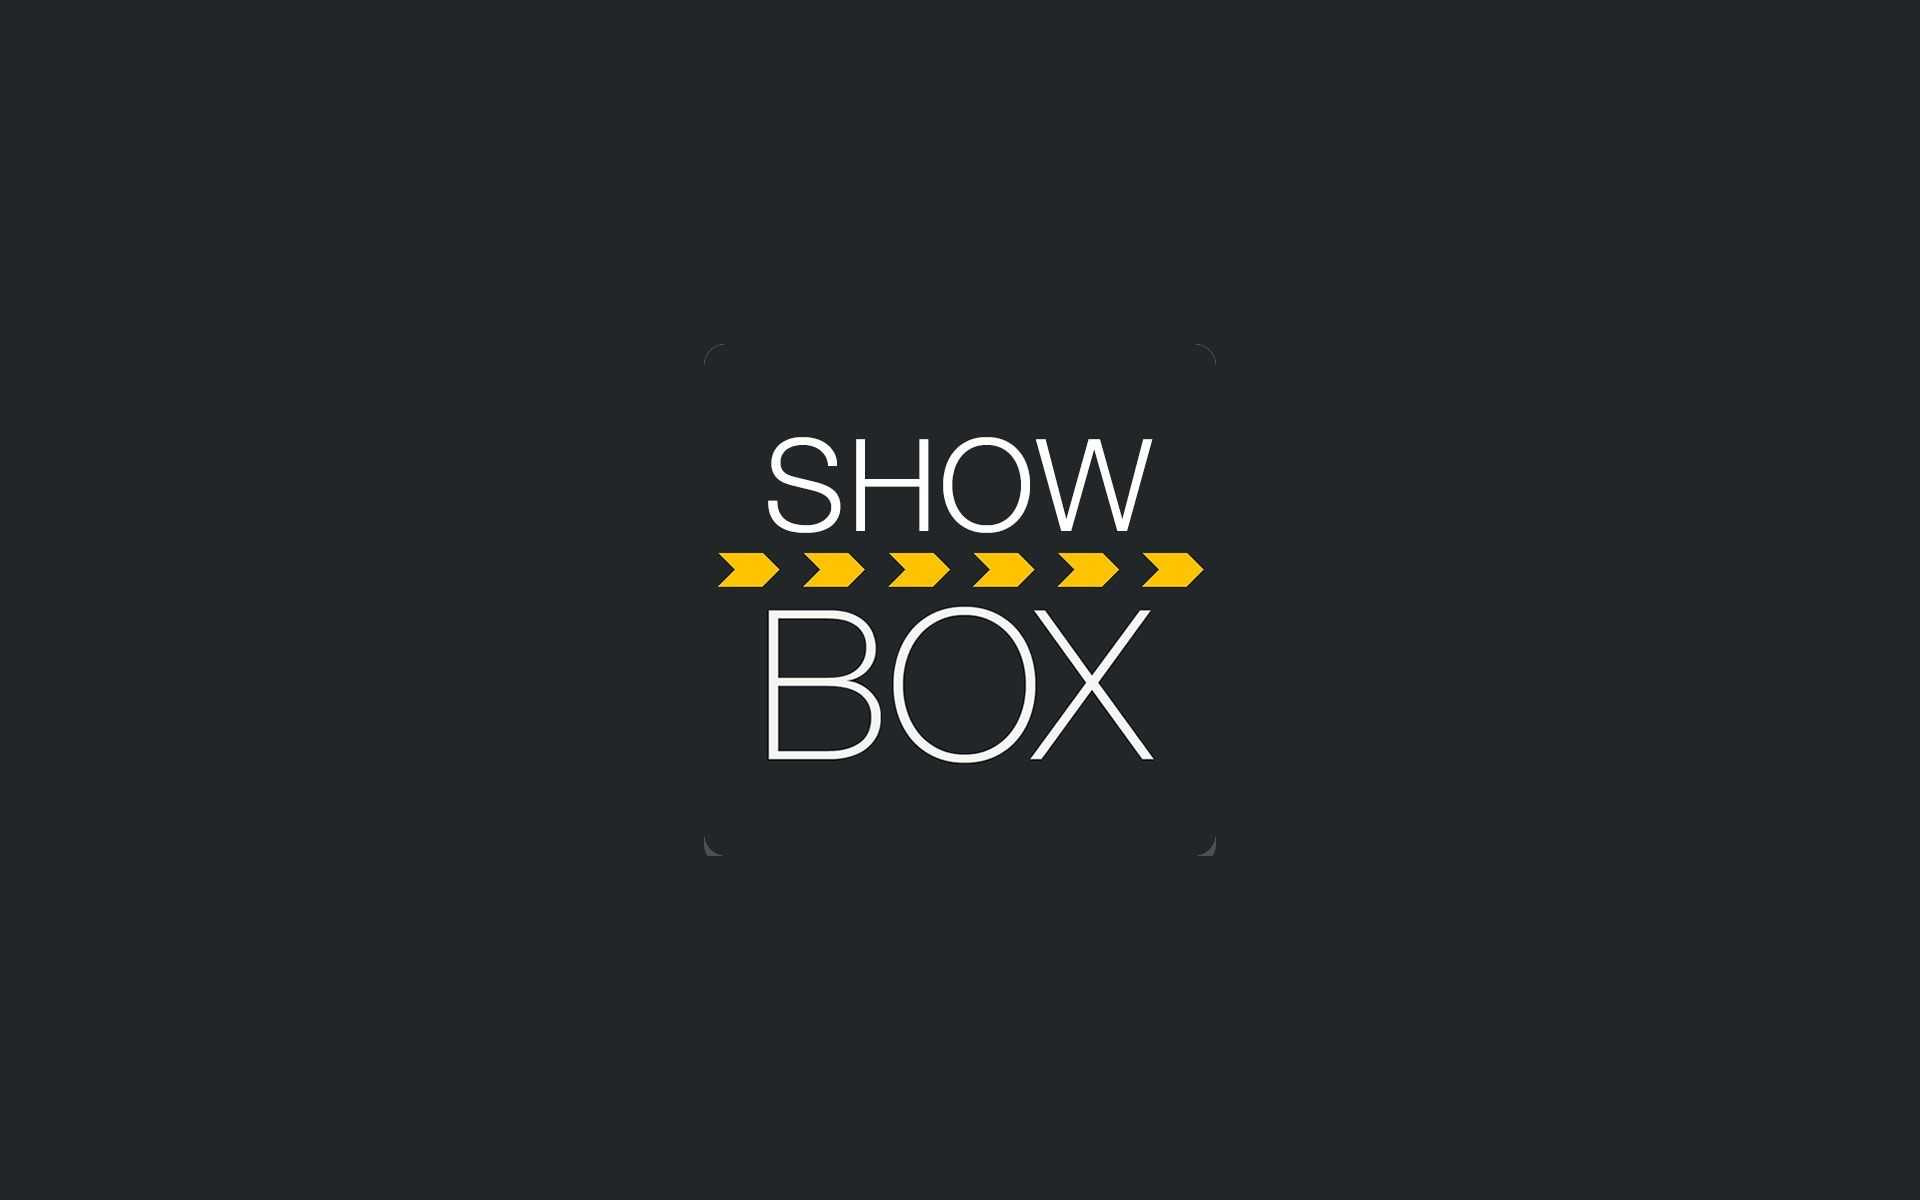 Download Showbox For Android Download app, App, Android